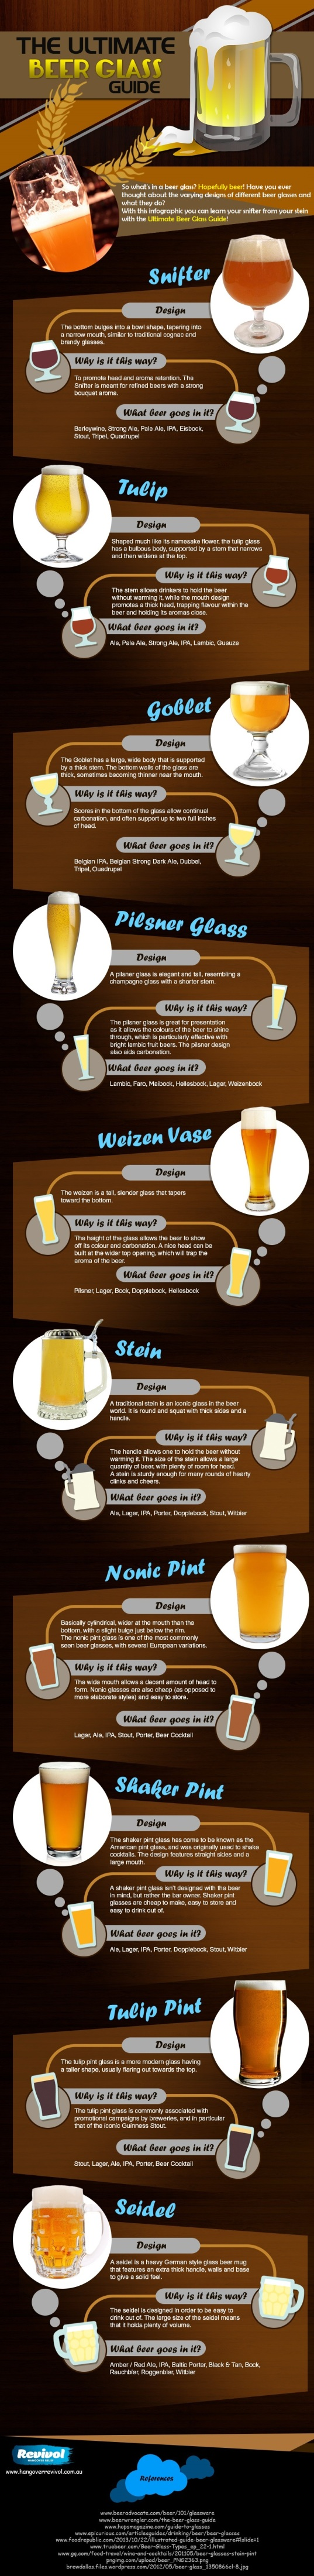 the-ultimate-beer-glass-guide_5440eb7335092